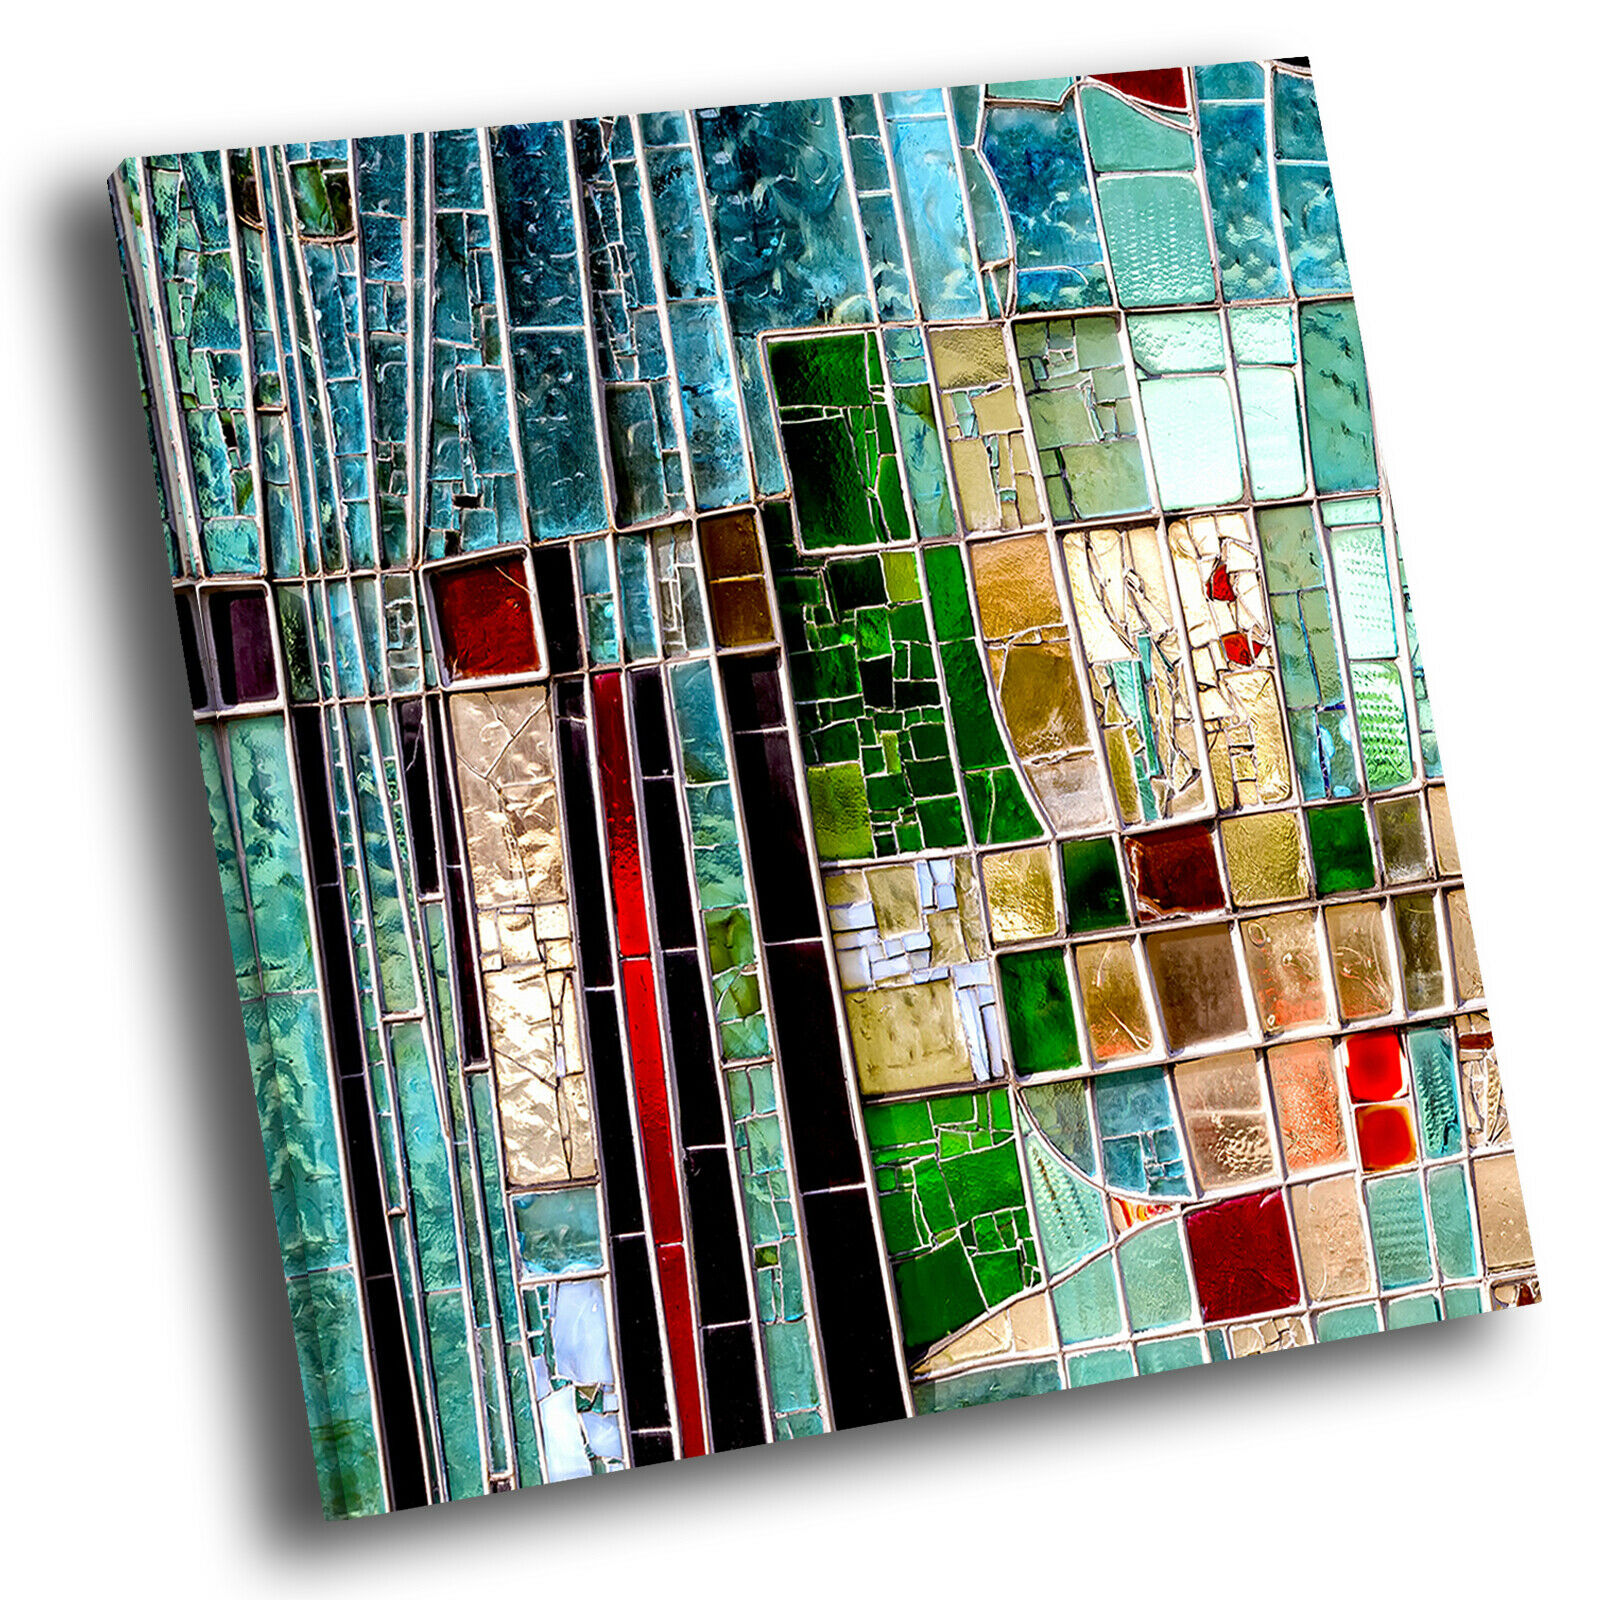 Blau Grün rot Square Abstract Photo Canvas Wall Art Large Picture Prints